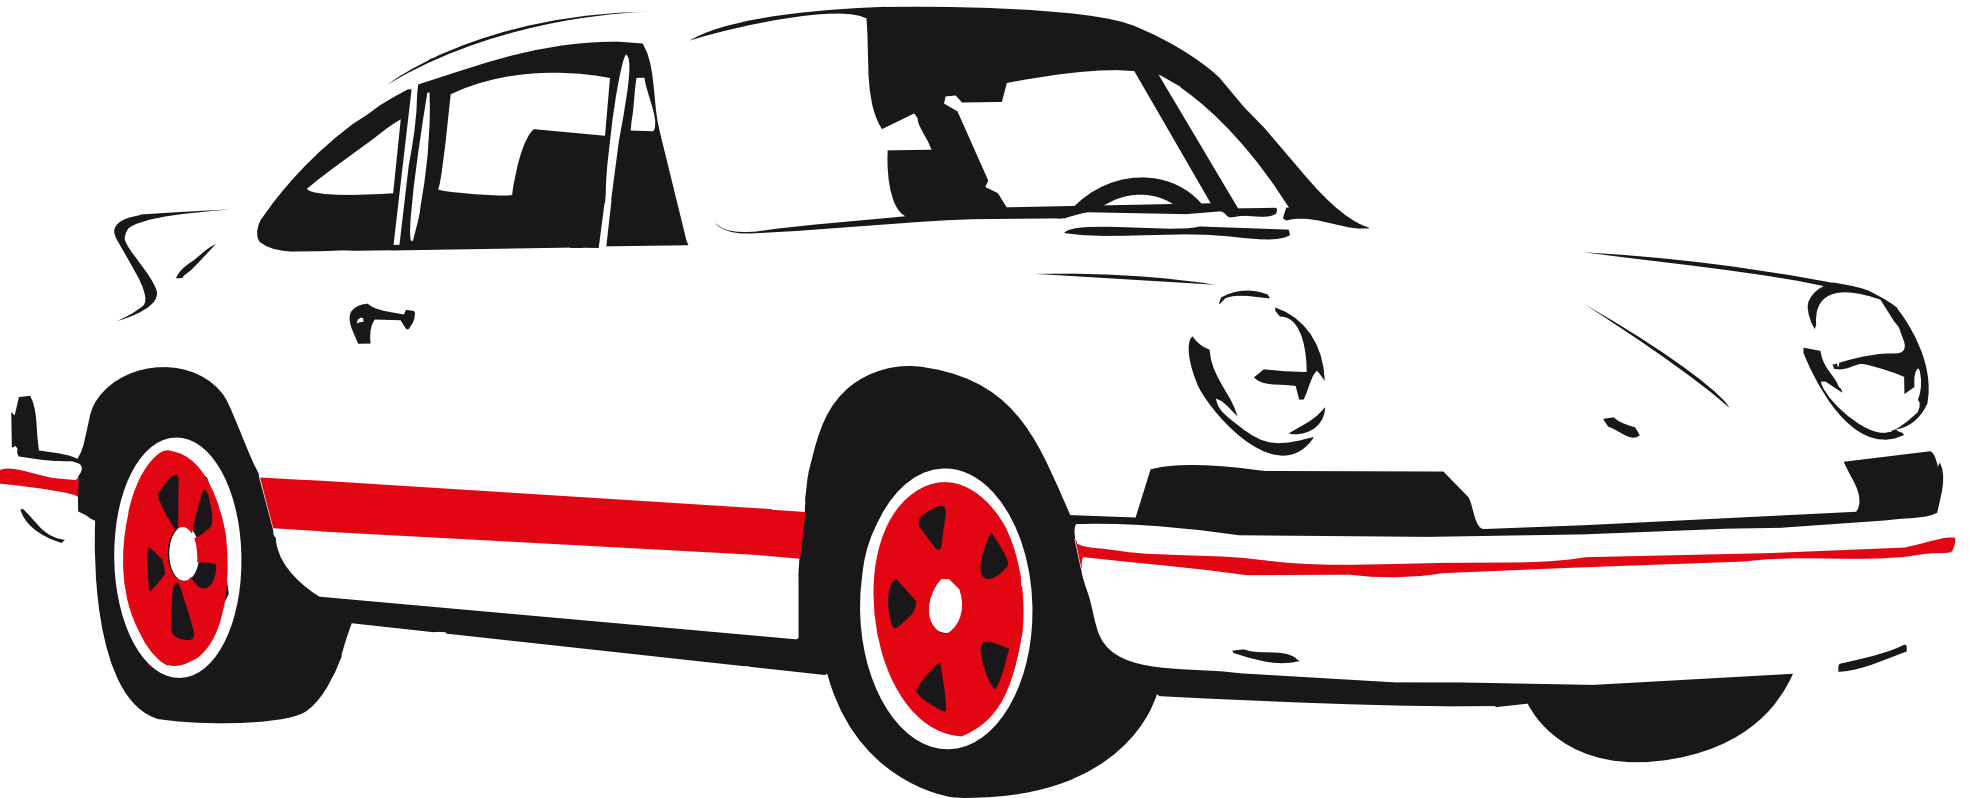 1969x798 Race Car Clipart Sports Car